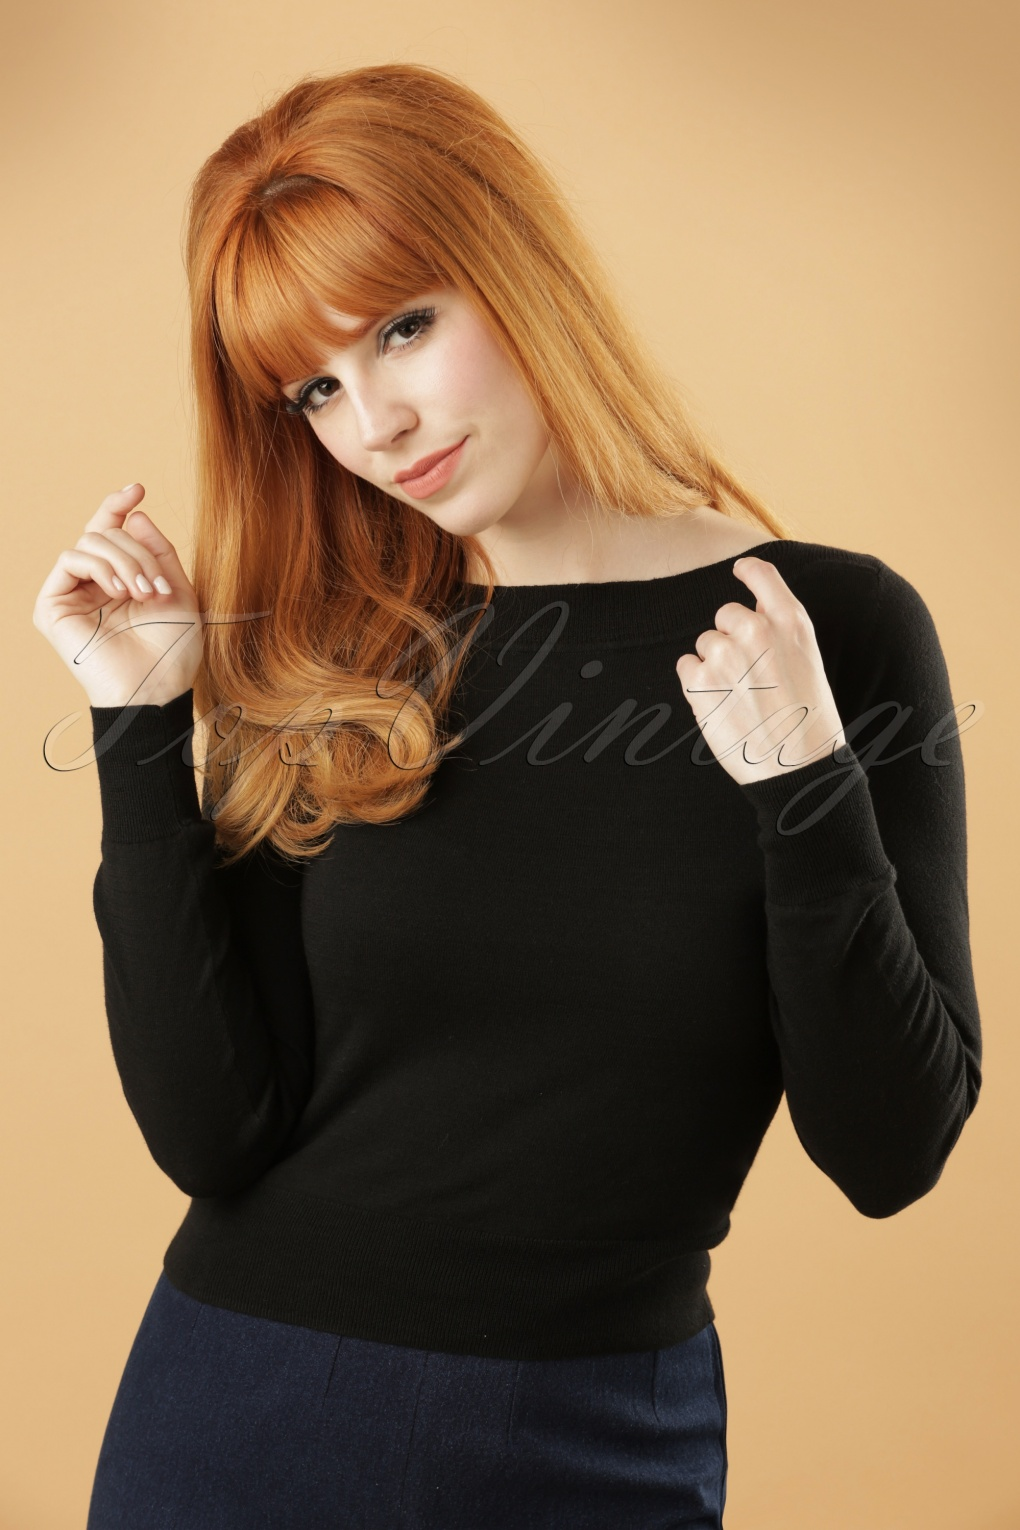 Shop 1960s Style Blouses, Shirts and Tops 50s Boatneck Cottonclub Top in Black £54.67 AT vintagedancer.com